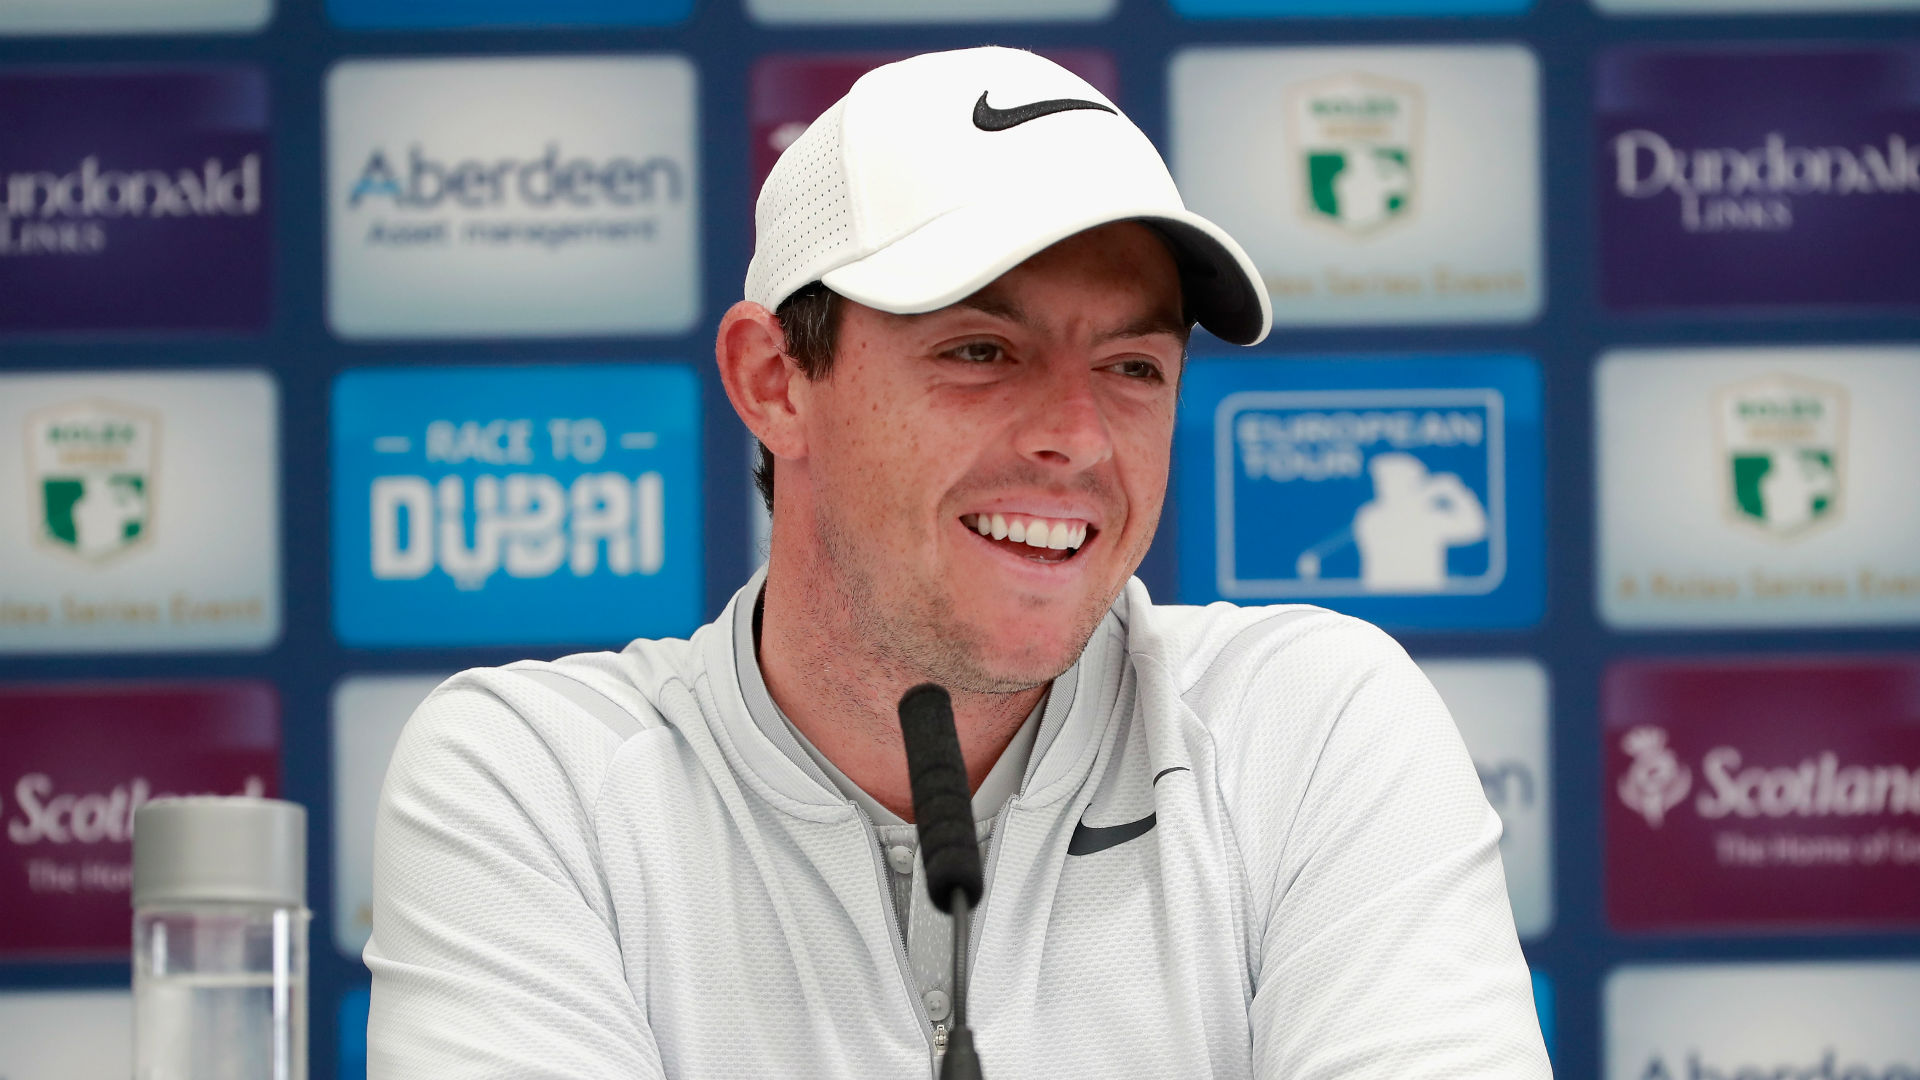 Rory McIlroy will 'bounce back', says Rickie Fowler